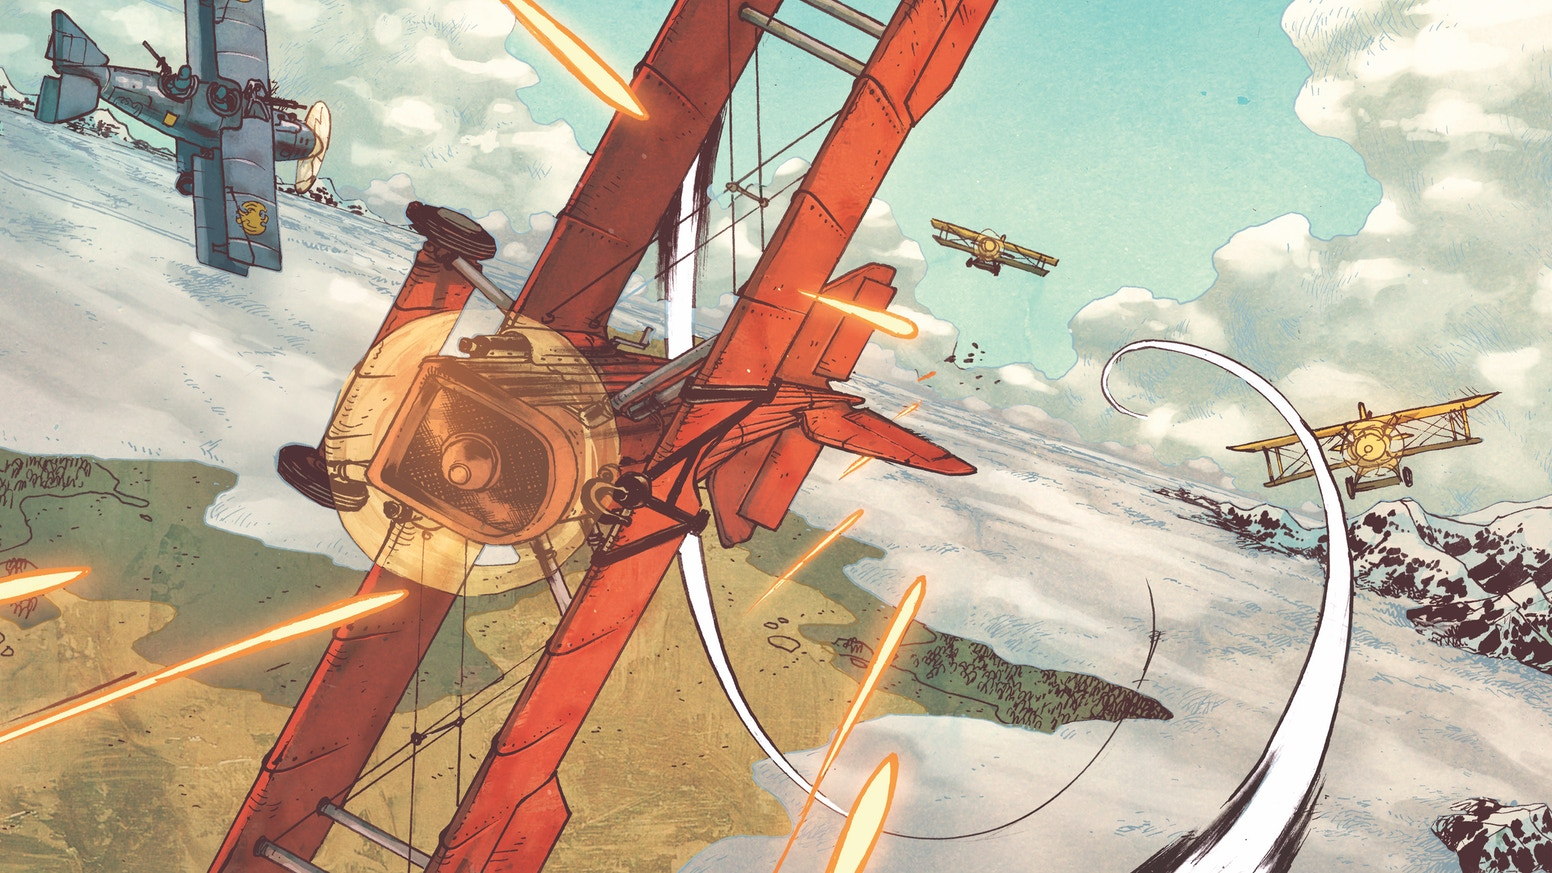 Skies of Fire is a dieselpunk airship story about a captain and her crew.